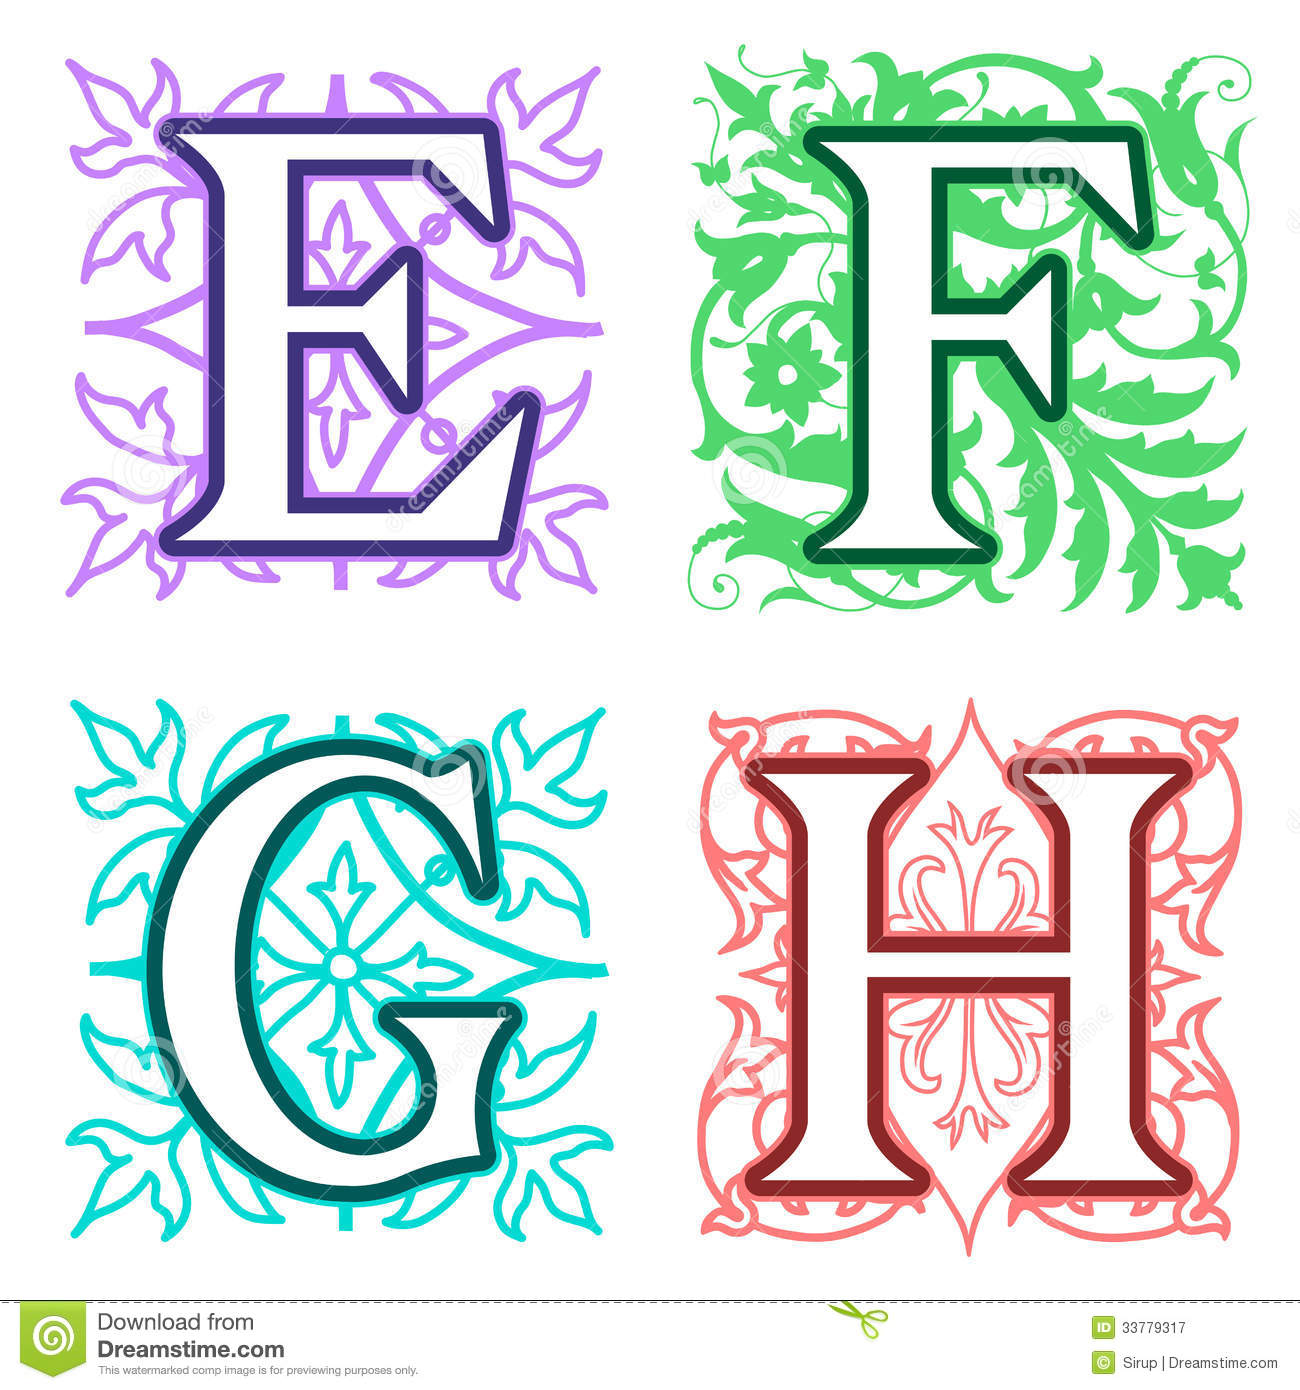 e f g h alphabet letters floral elements royalty free. Black Bedroom Furniture Sets. Home Design Ideas